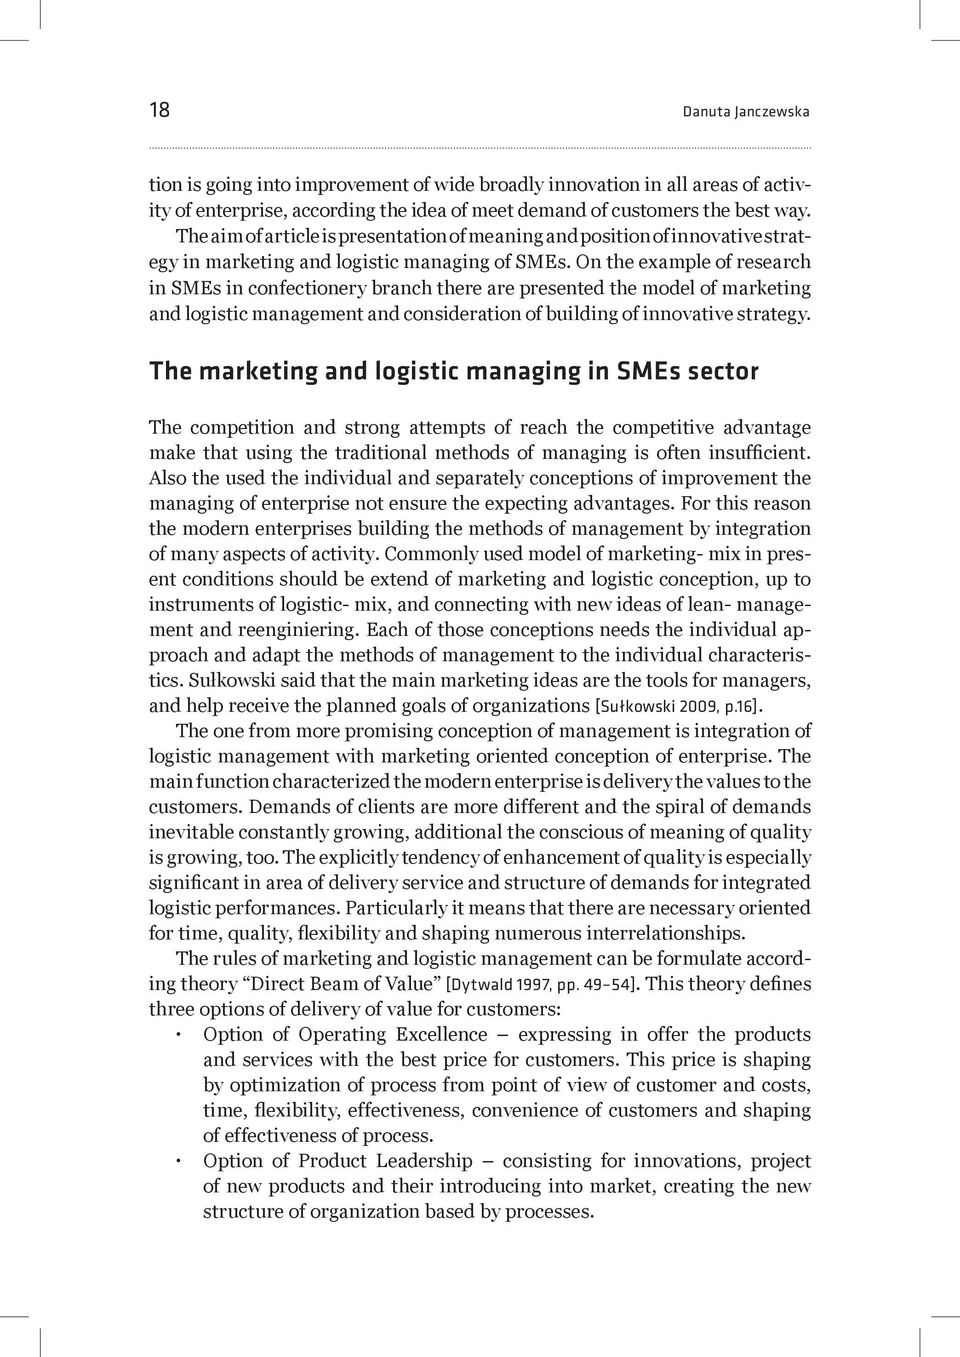 On the example of research in SMEs in confectionery branch there are presented the model of marketing and logistic management and consideration of building of innovative strategy.